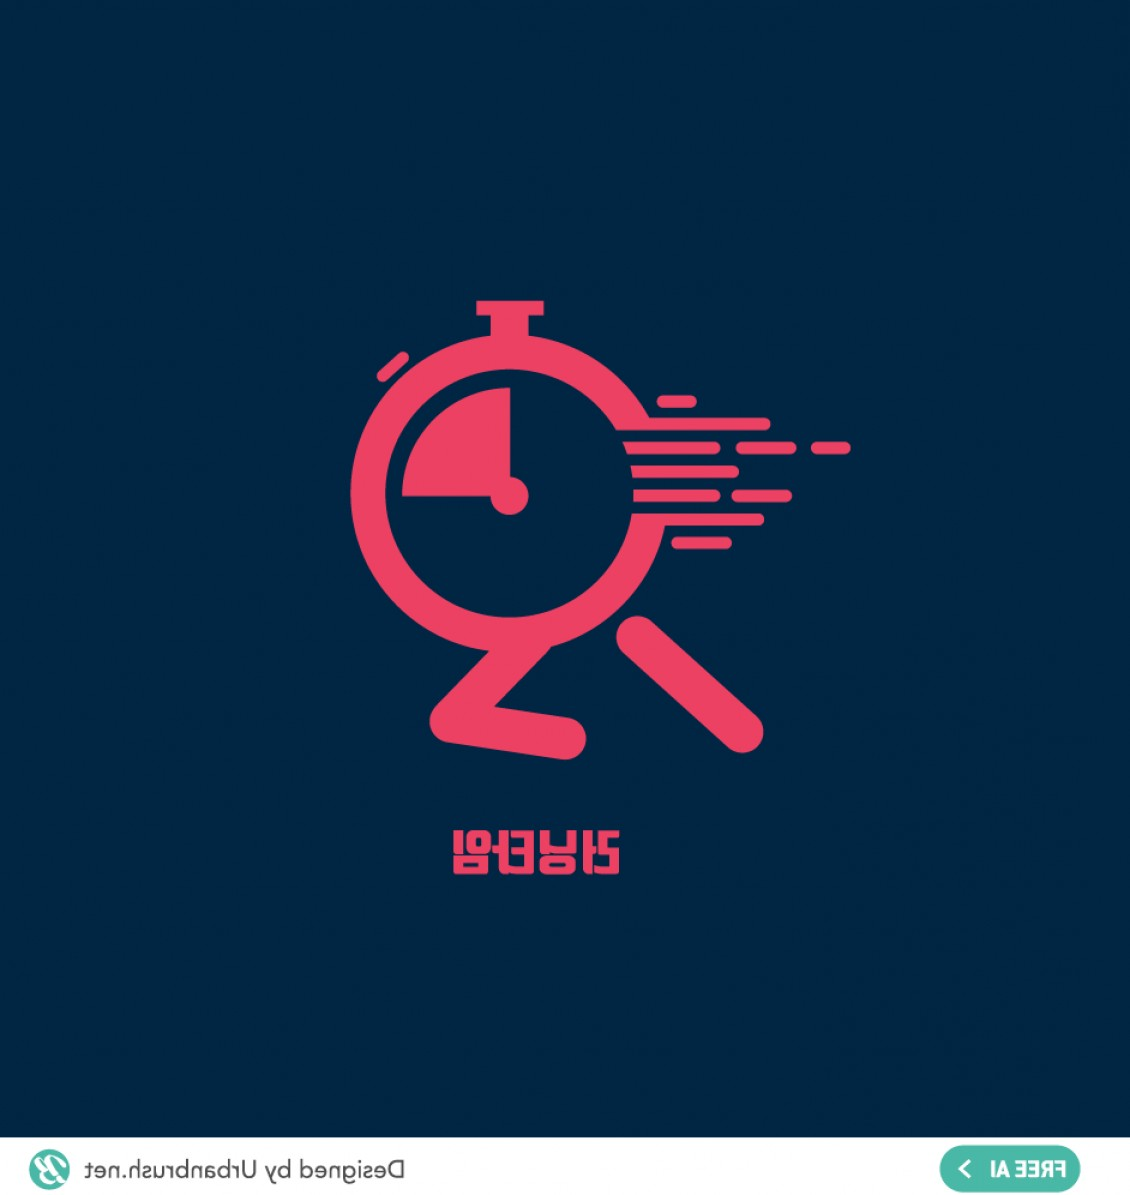 Stop Watch Vector Ai File: Running Clock Ai Free Illustration Vector Download